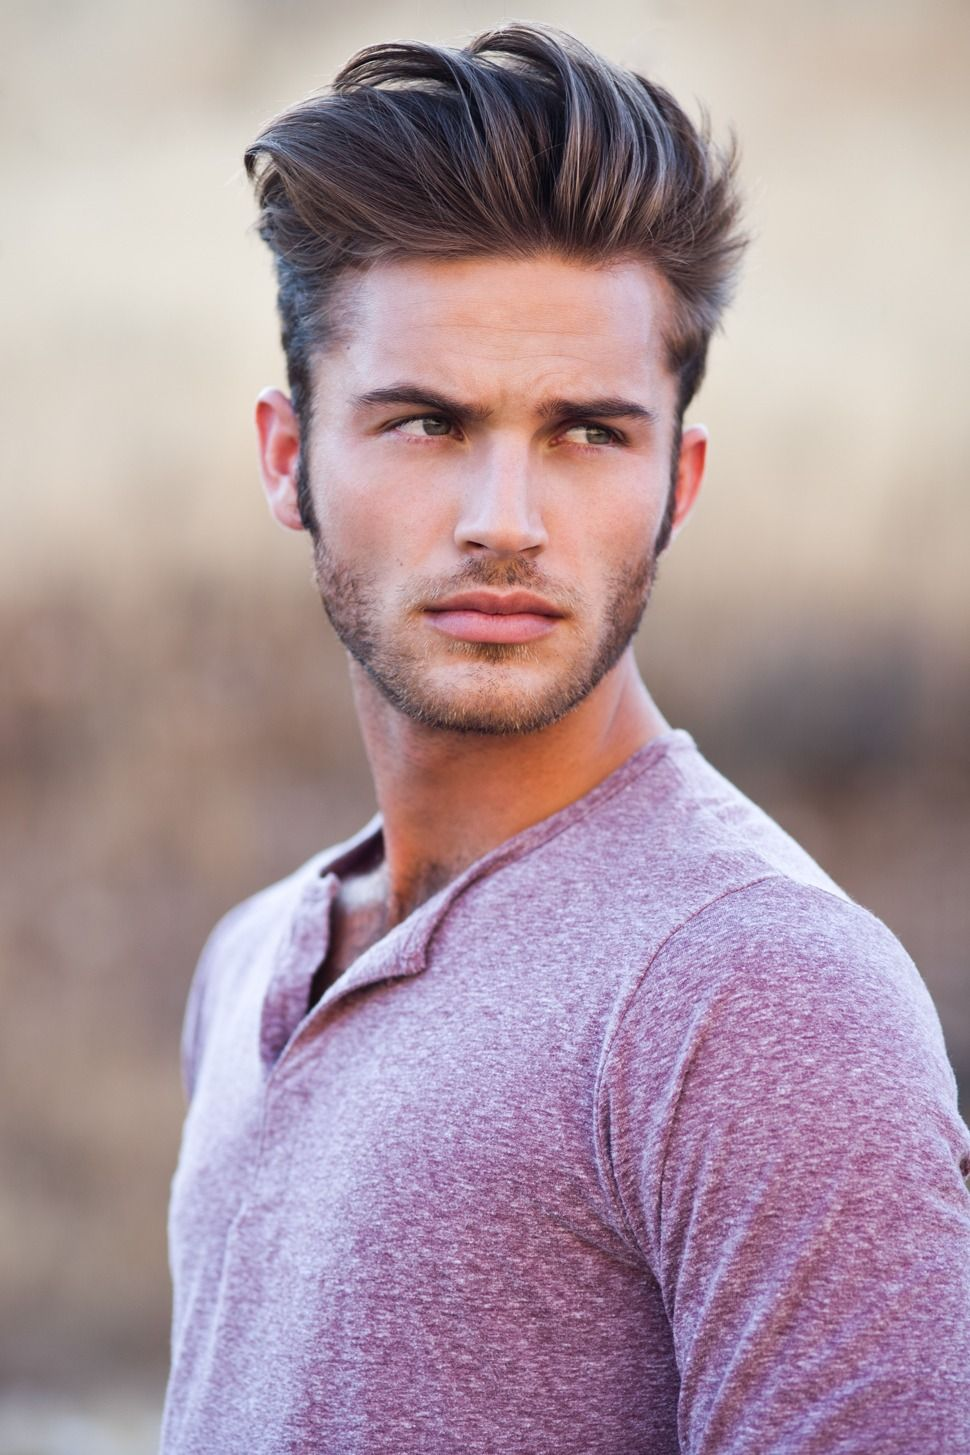 Undercut Men Hairstyle Enchanting Pinleo Neri Alta Peluqueria On Del Neri Boys  Pinterest